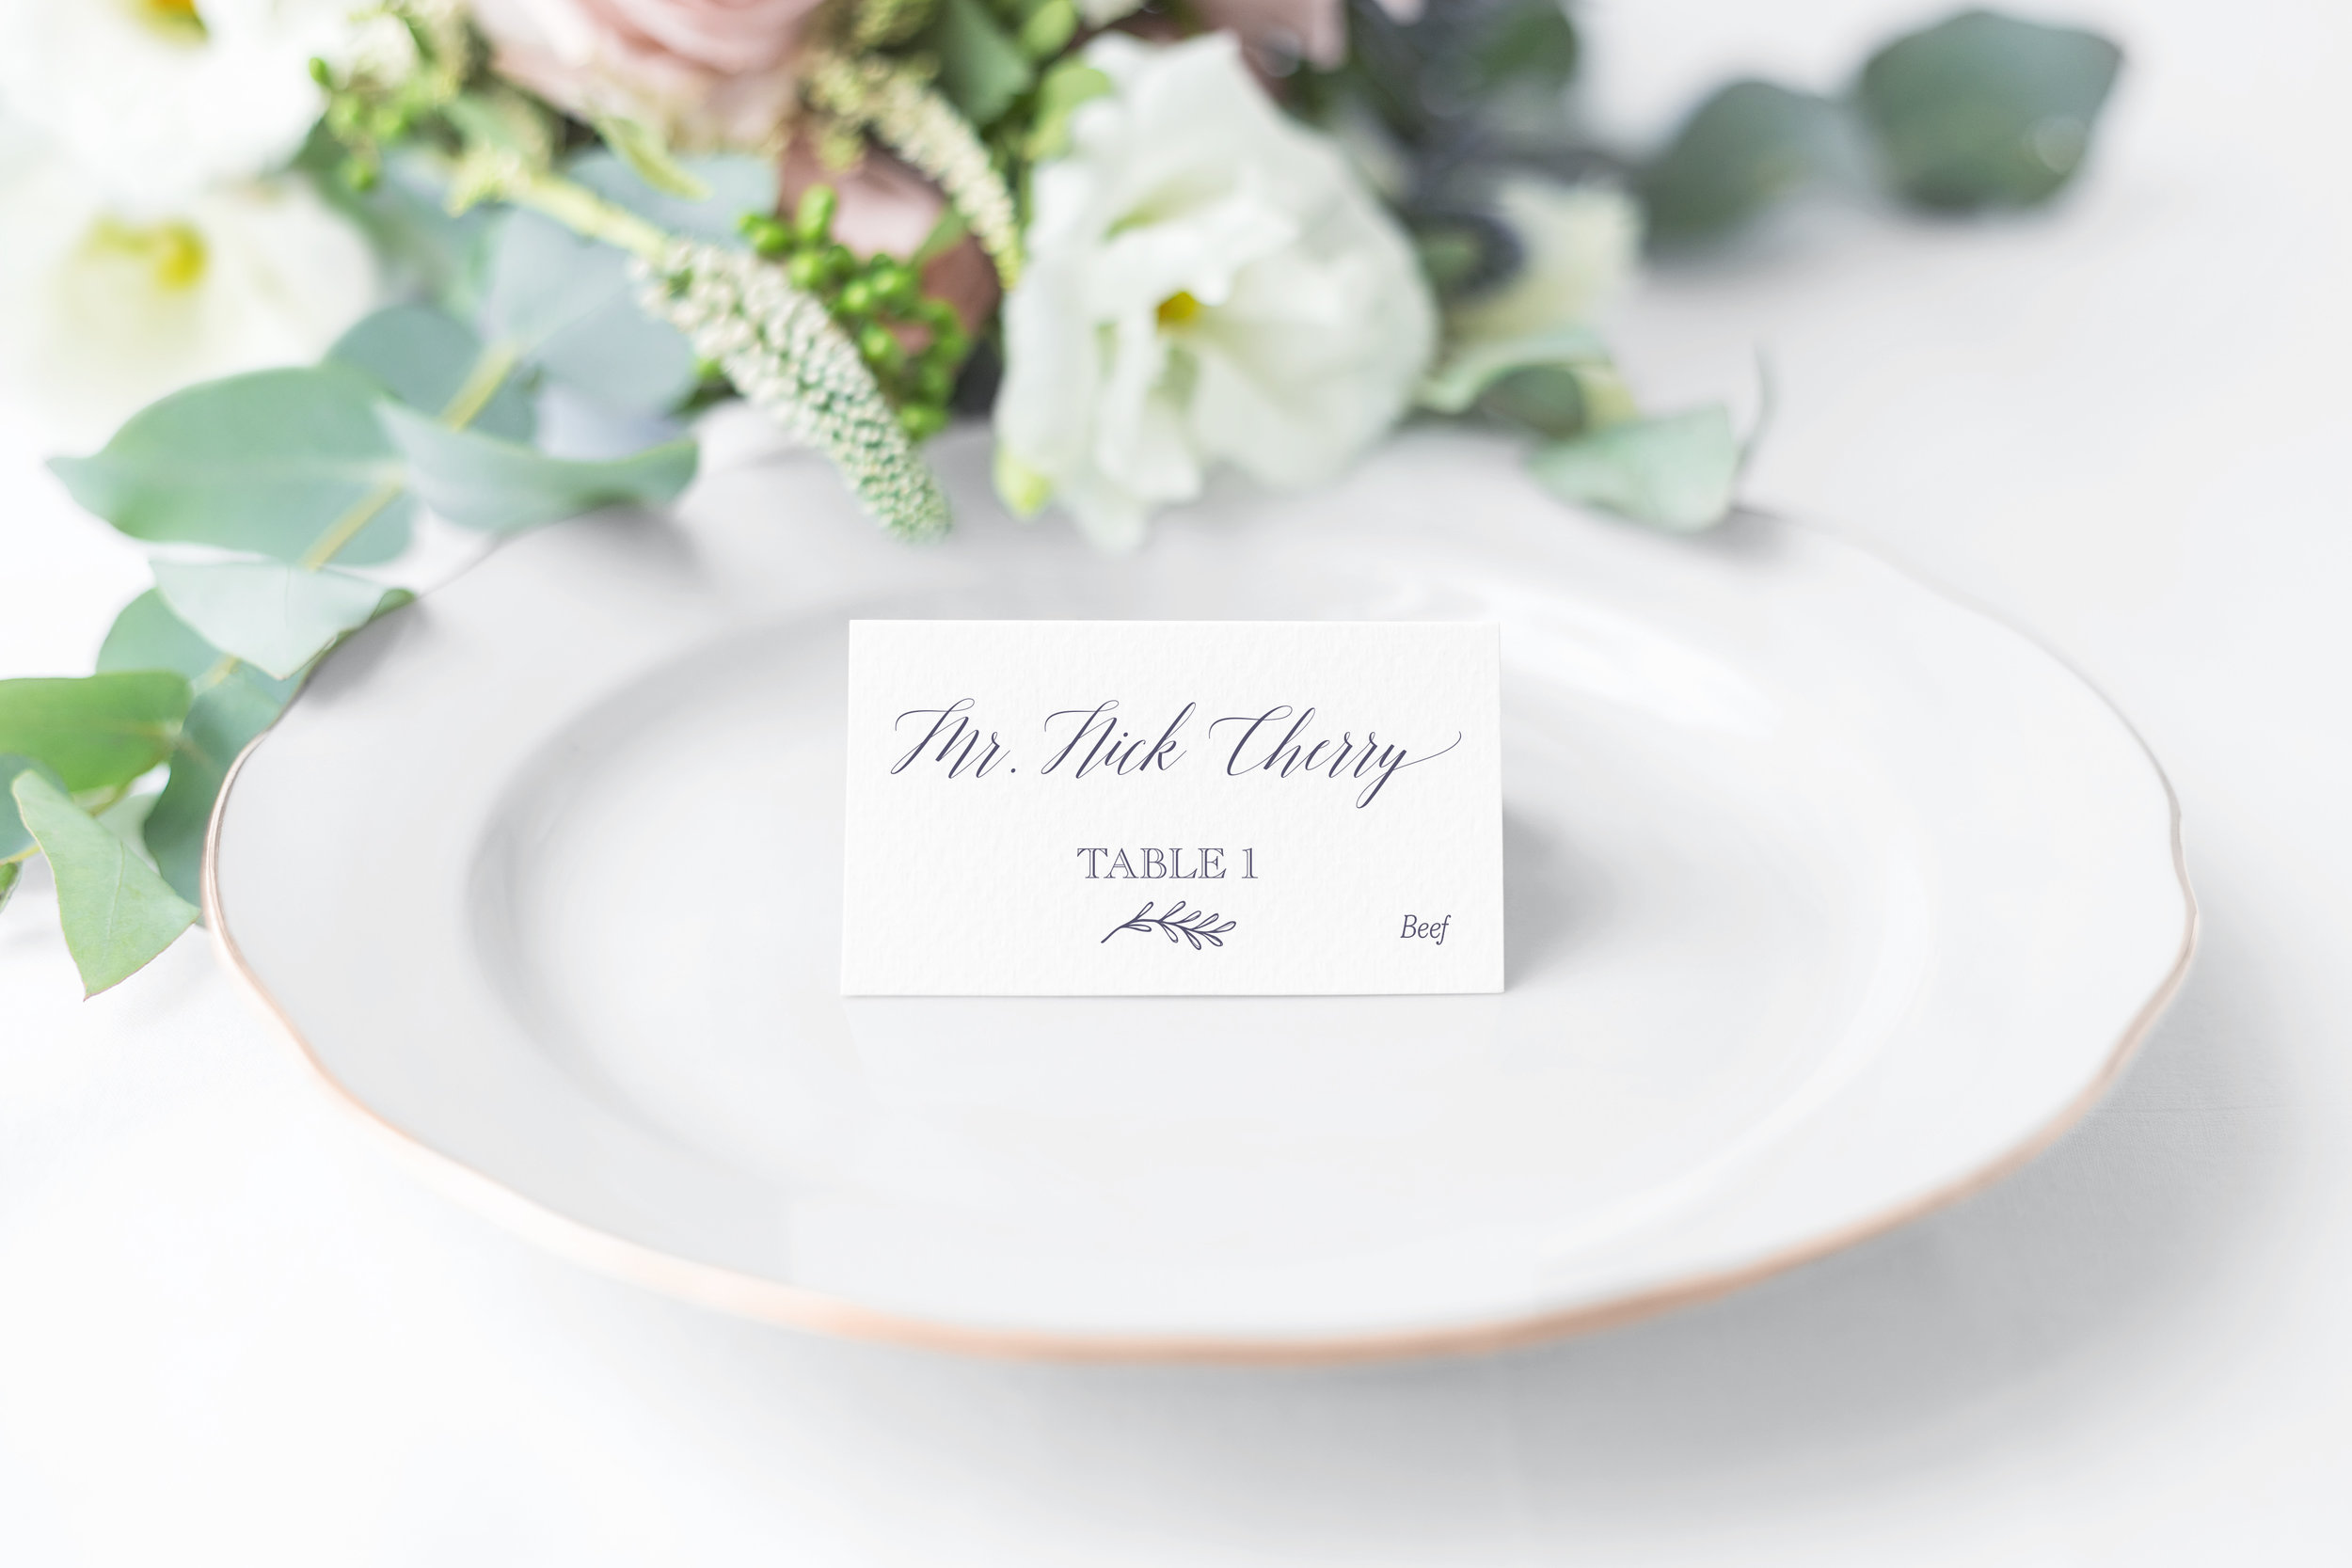 CLASSIC FOLDED PLACE CARD - PURPLE TEXT.jpg